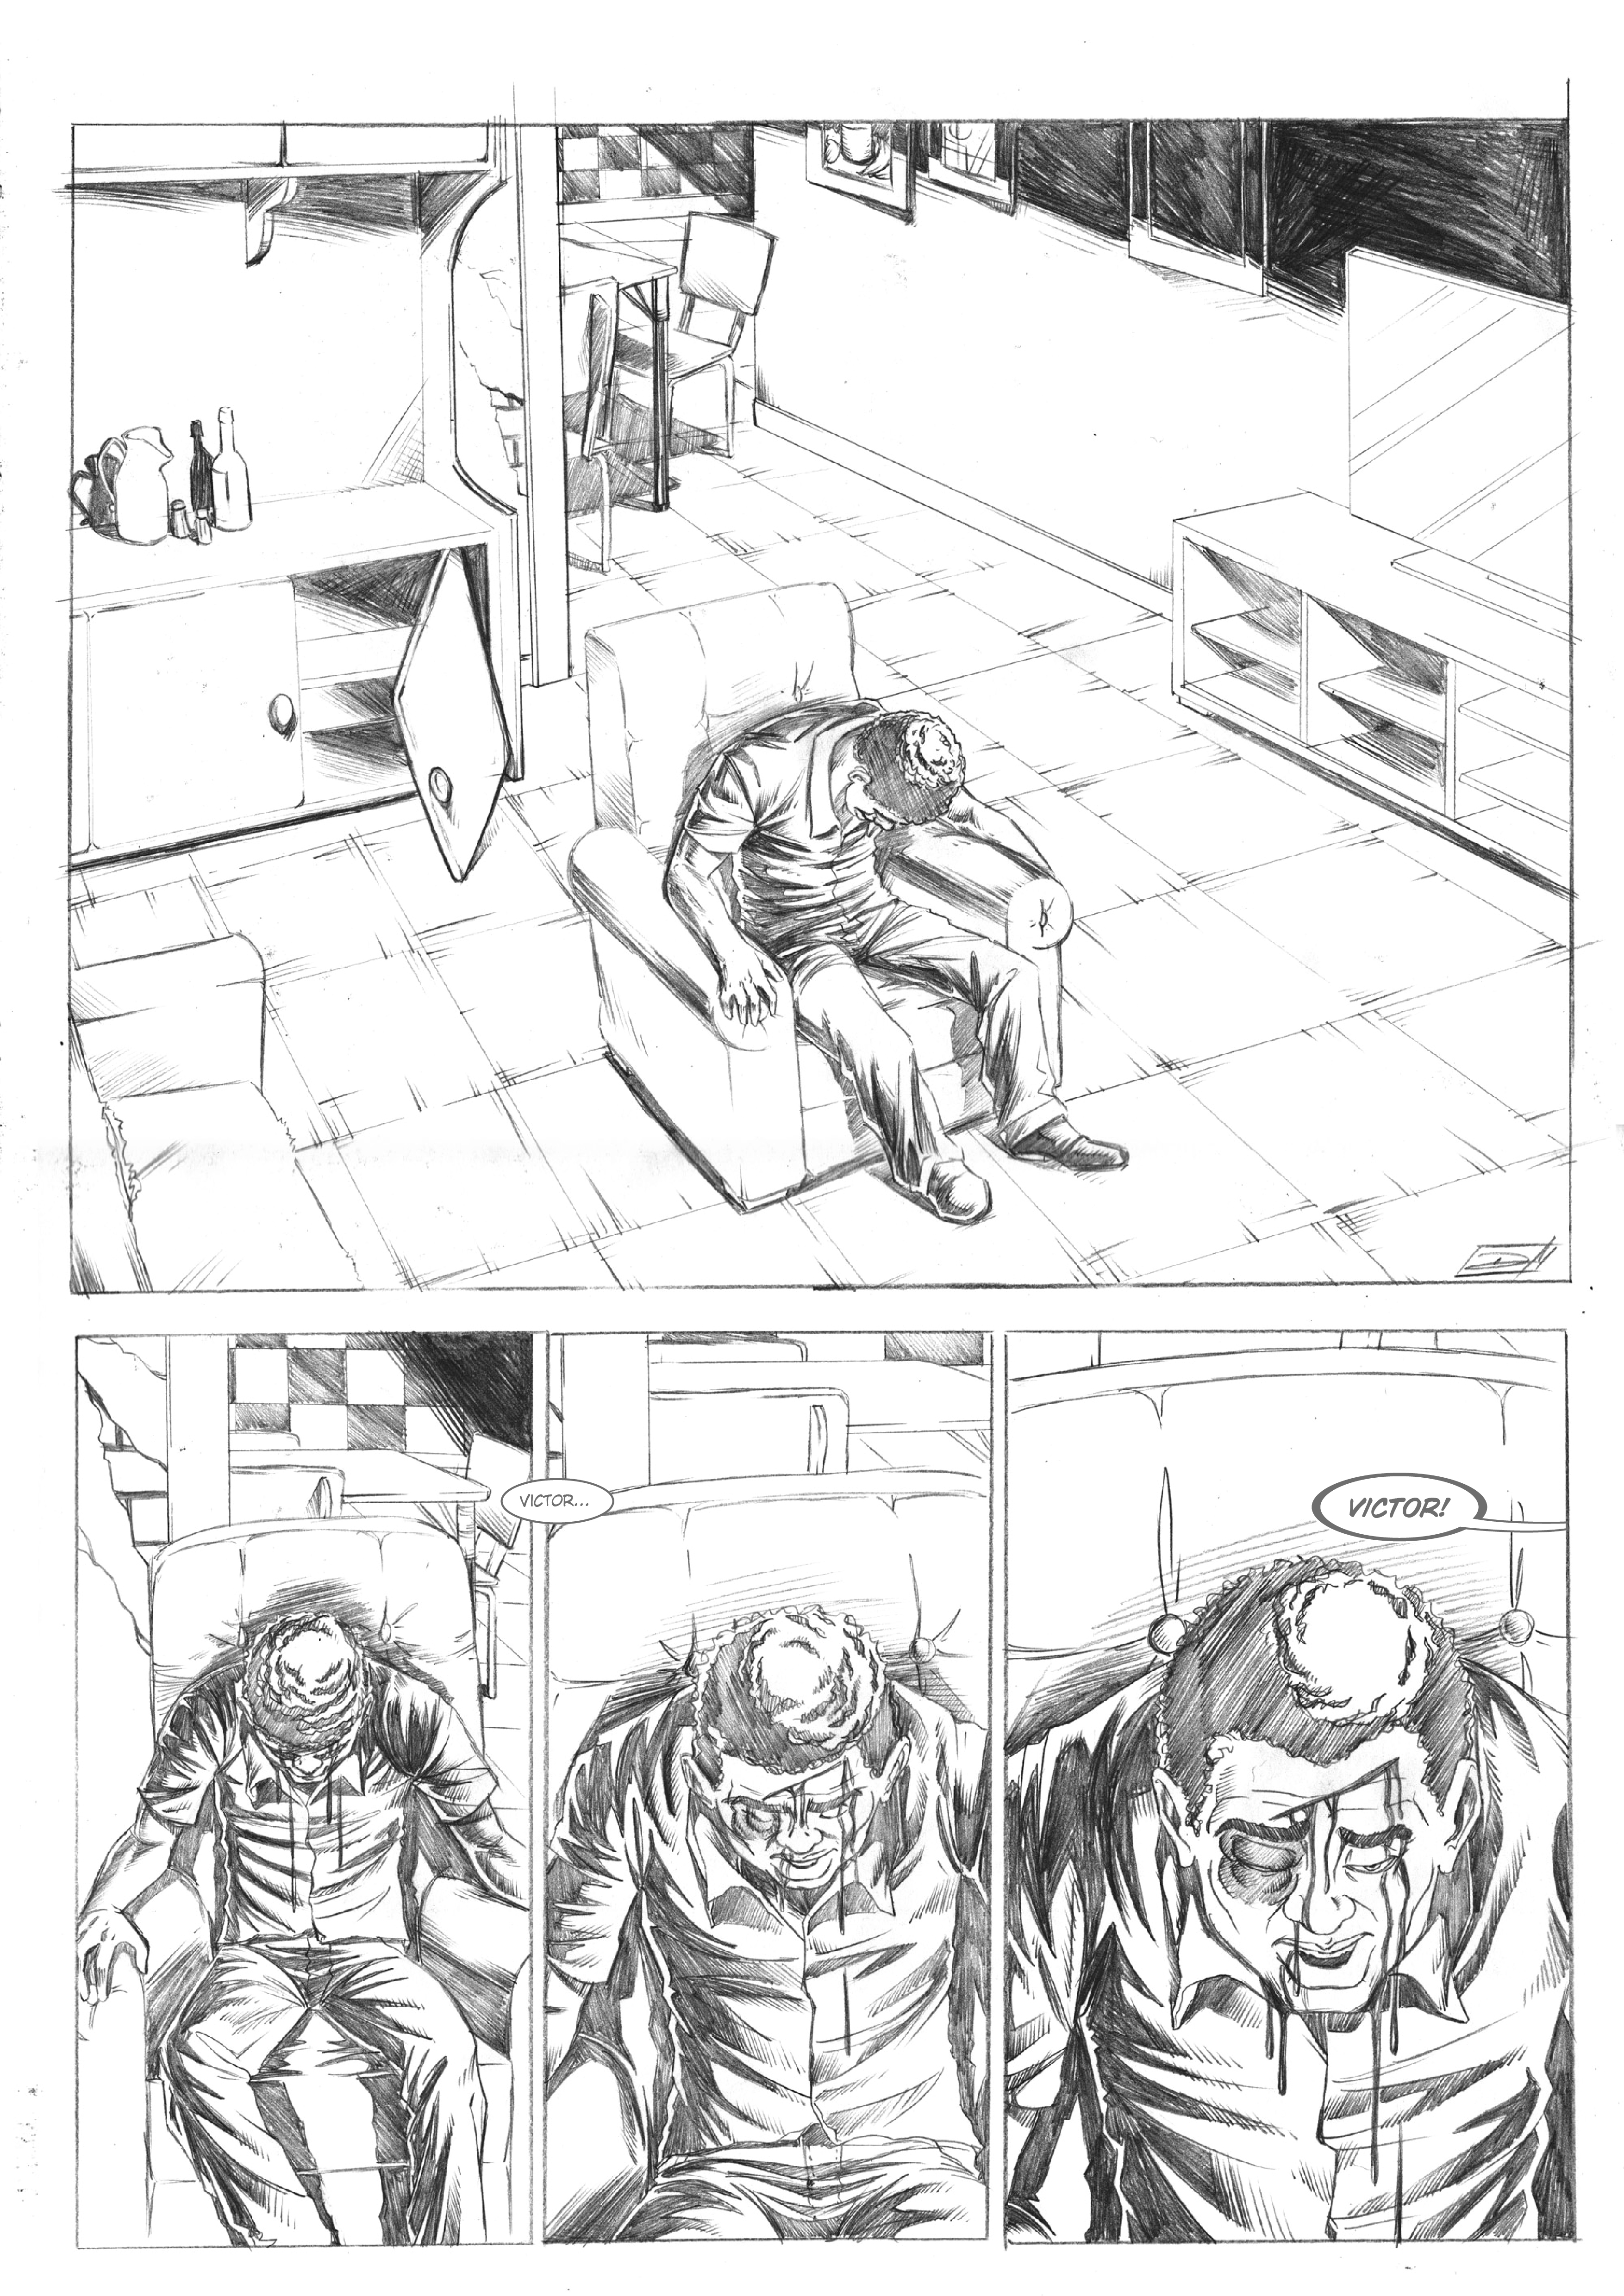 Nascido Morto - p.1 - Alex Moletta. Art by Dan Arrows